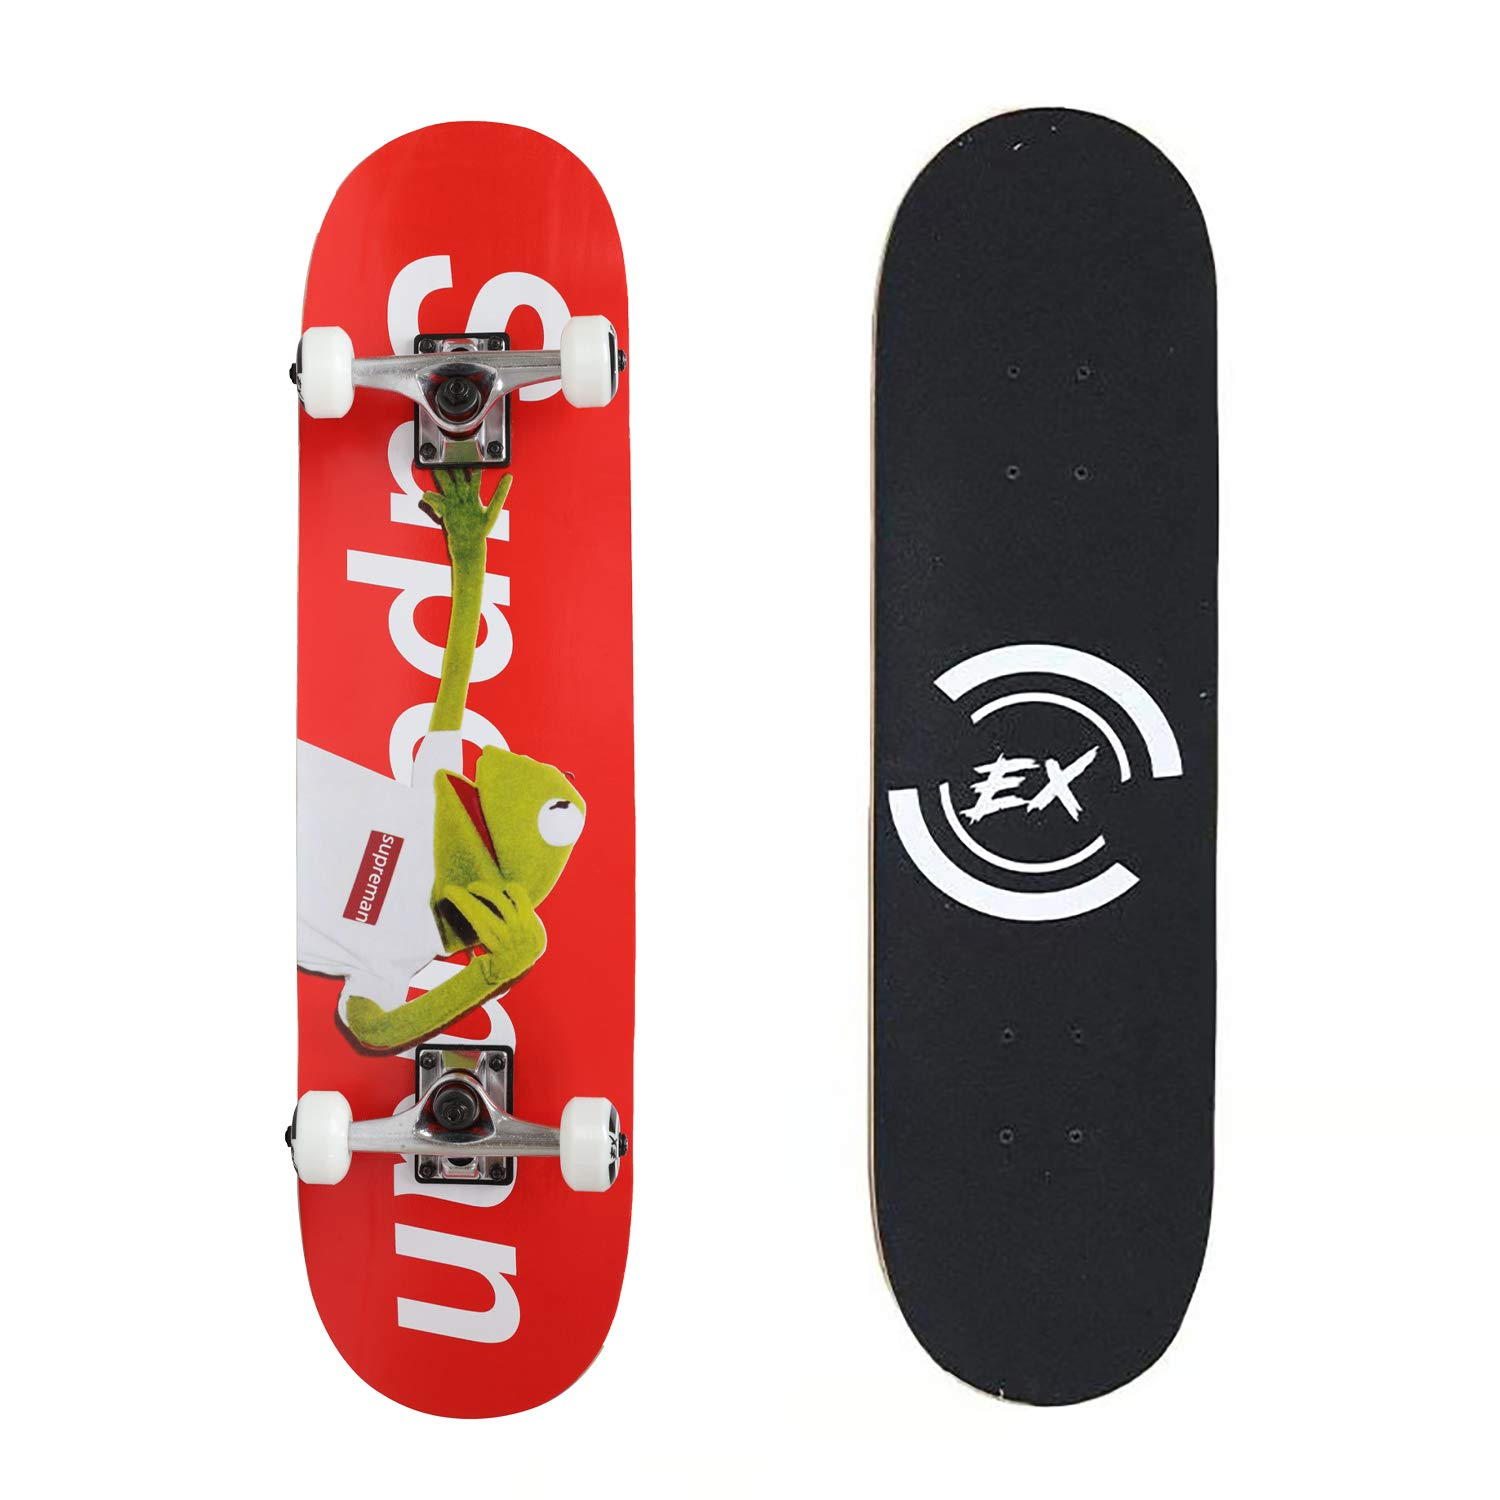 Pro Skateboard 31'' X 8'' Standard Skateboards Cruiser Complete Canadian Maple 11 Layers Double Kick Concave Skate Boards by DIYUSI